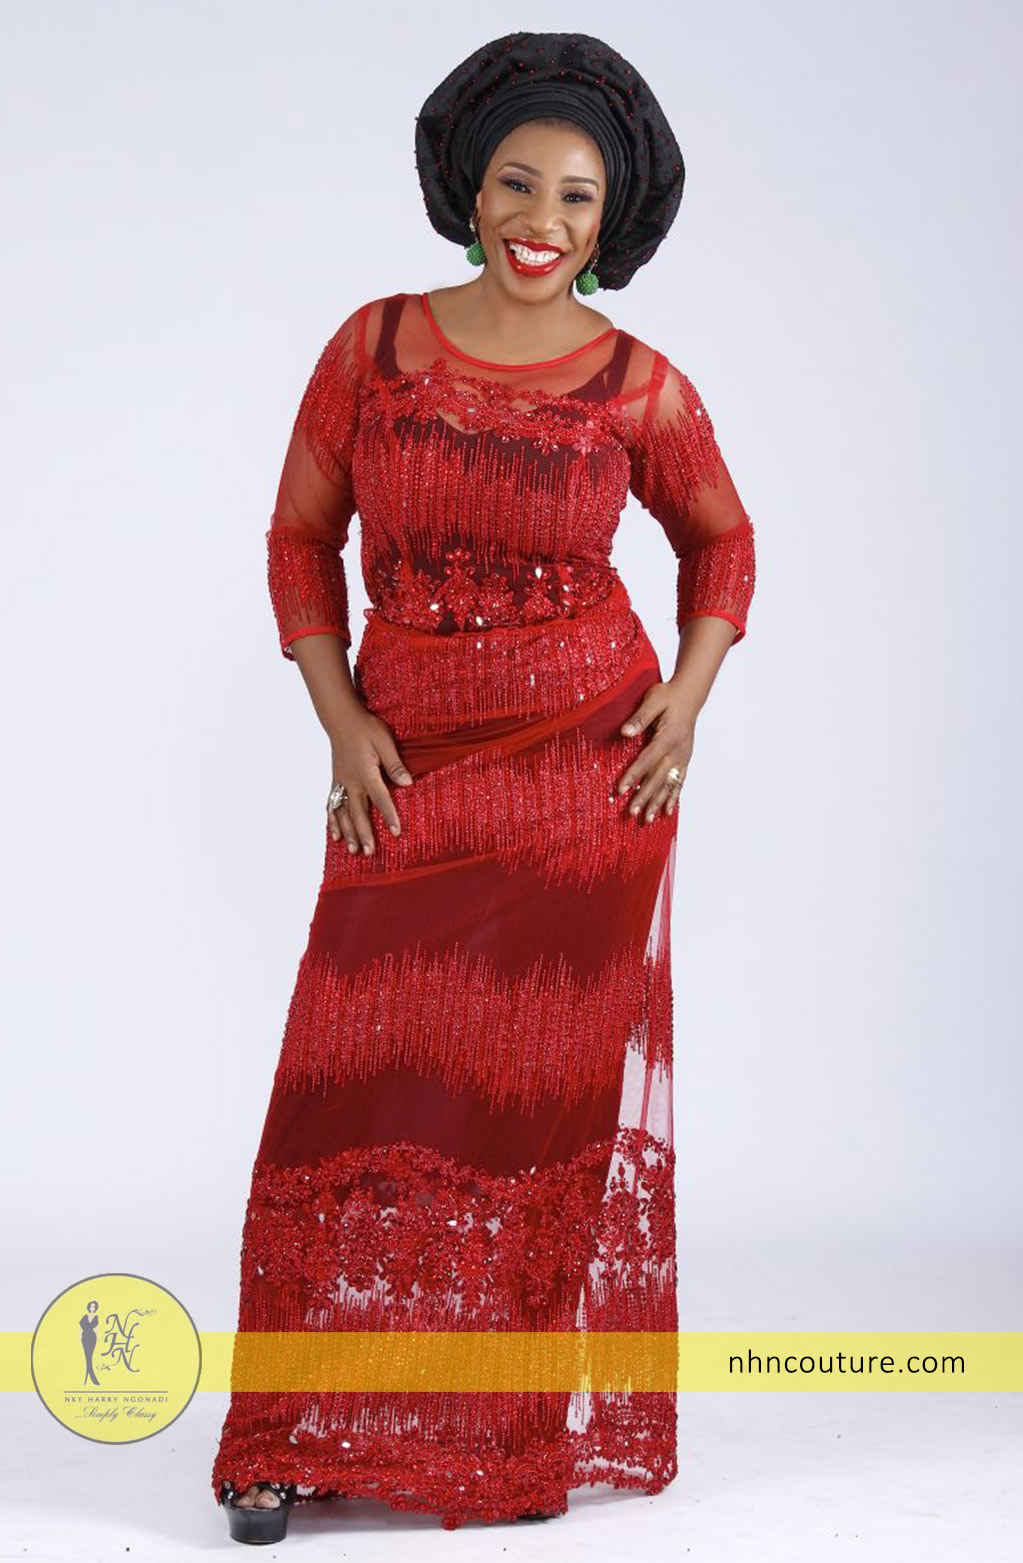 nhn-couture_dressing-with-red_asoebi-style-inspiration_2